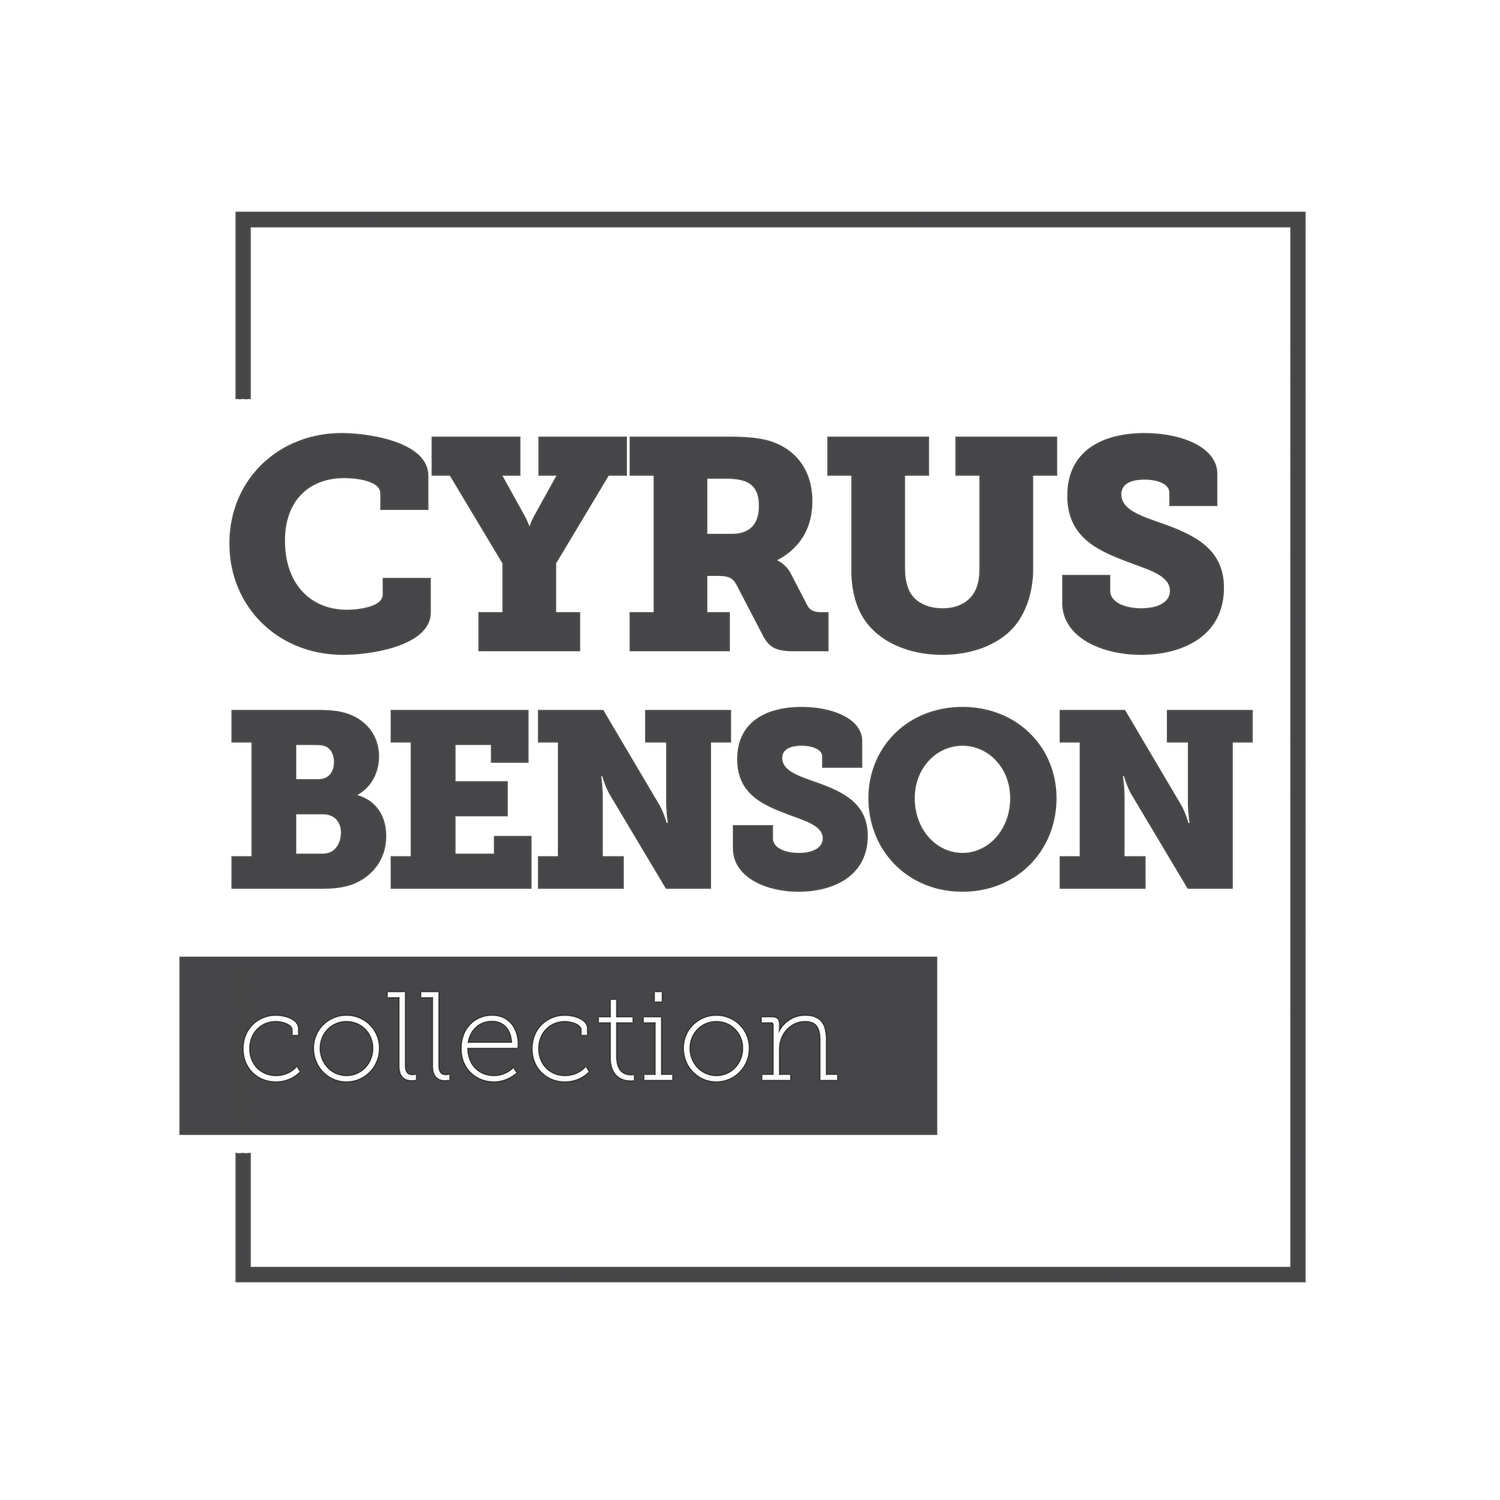 Cyrus Benson Collection